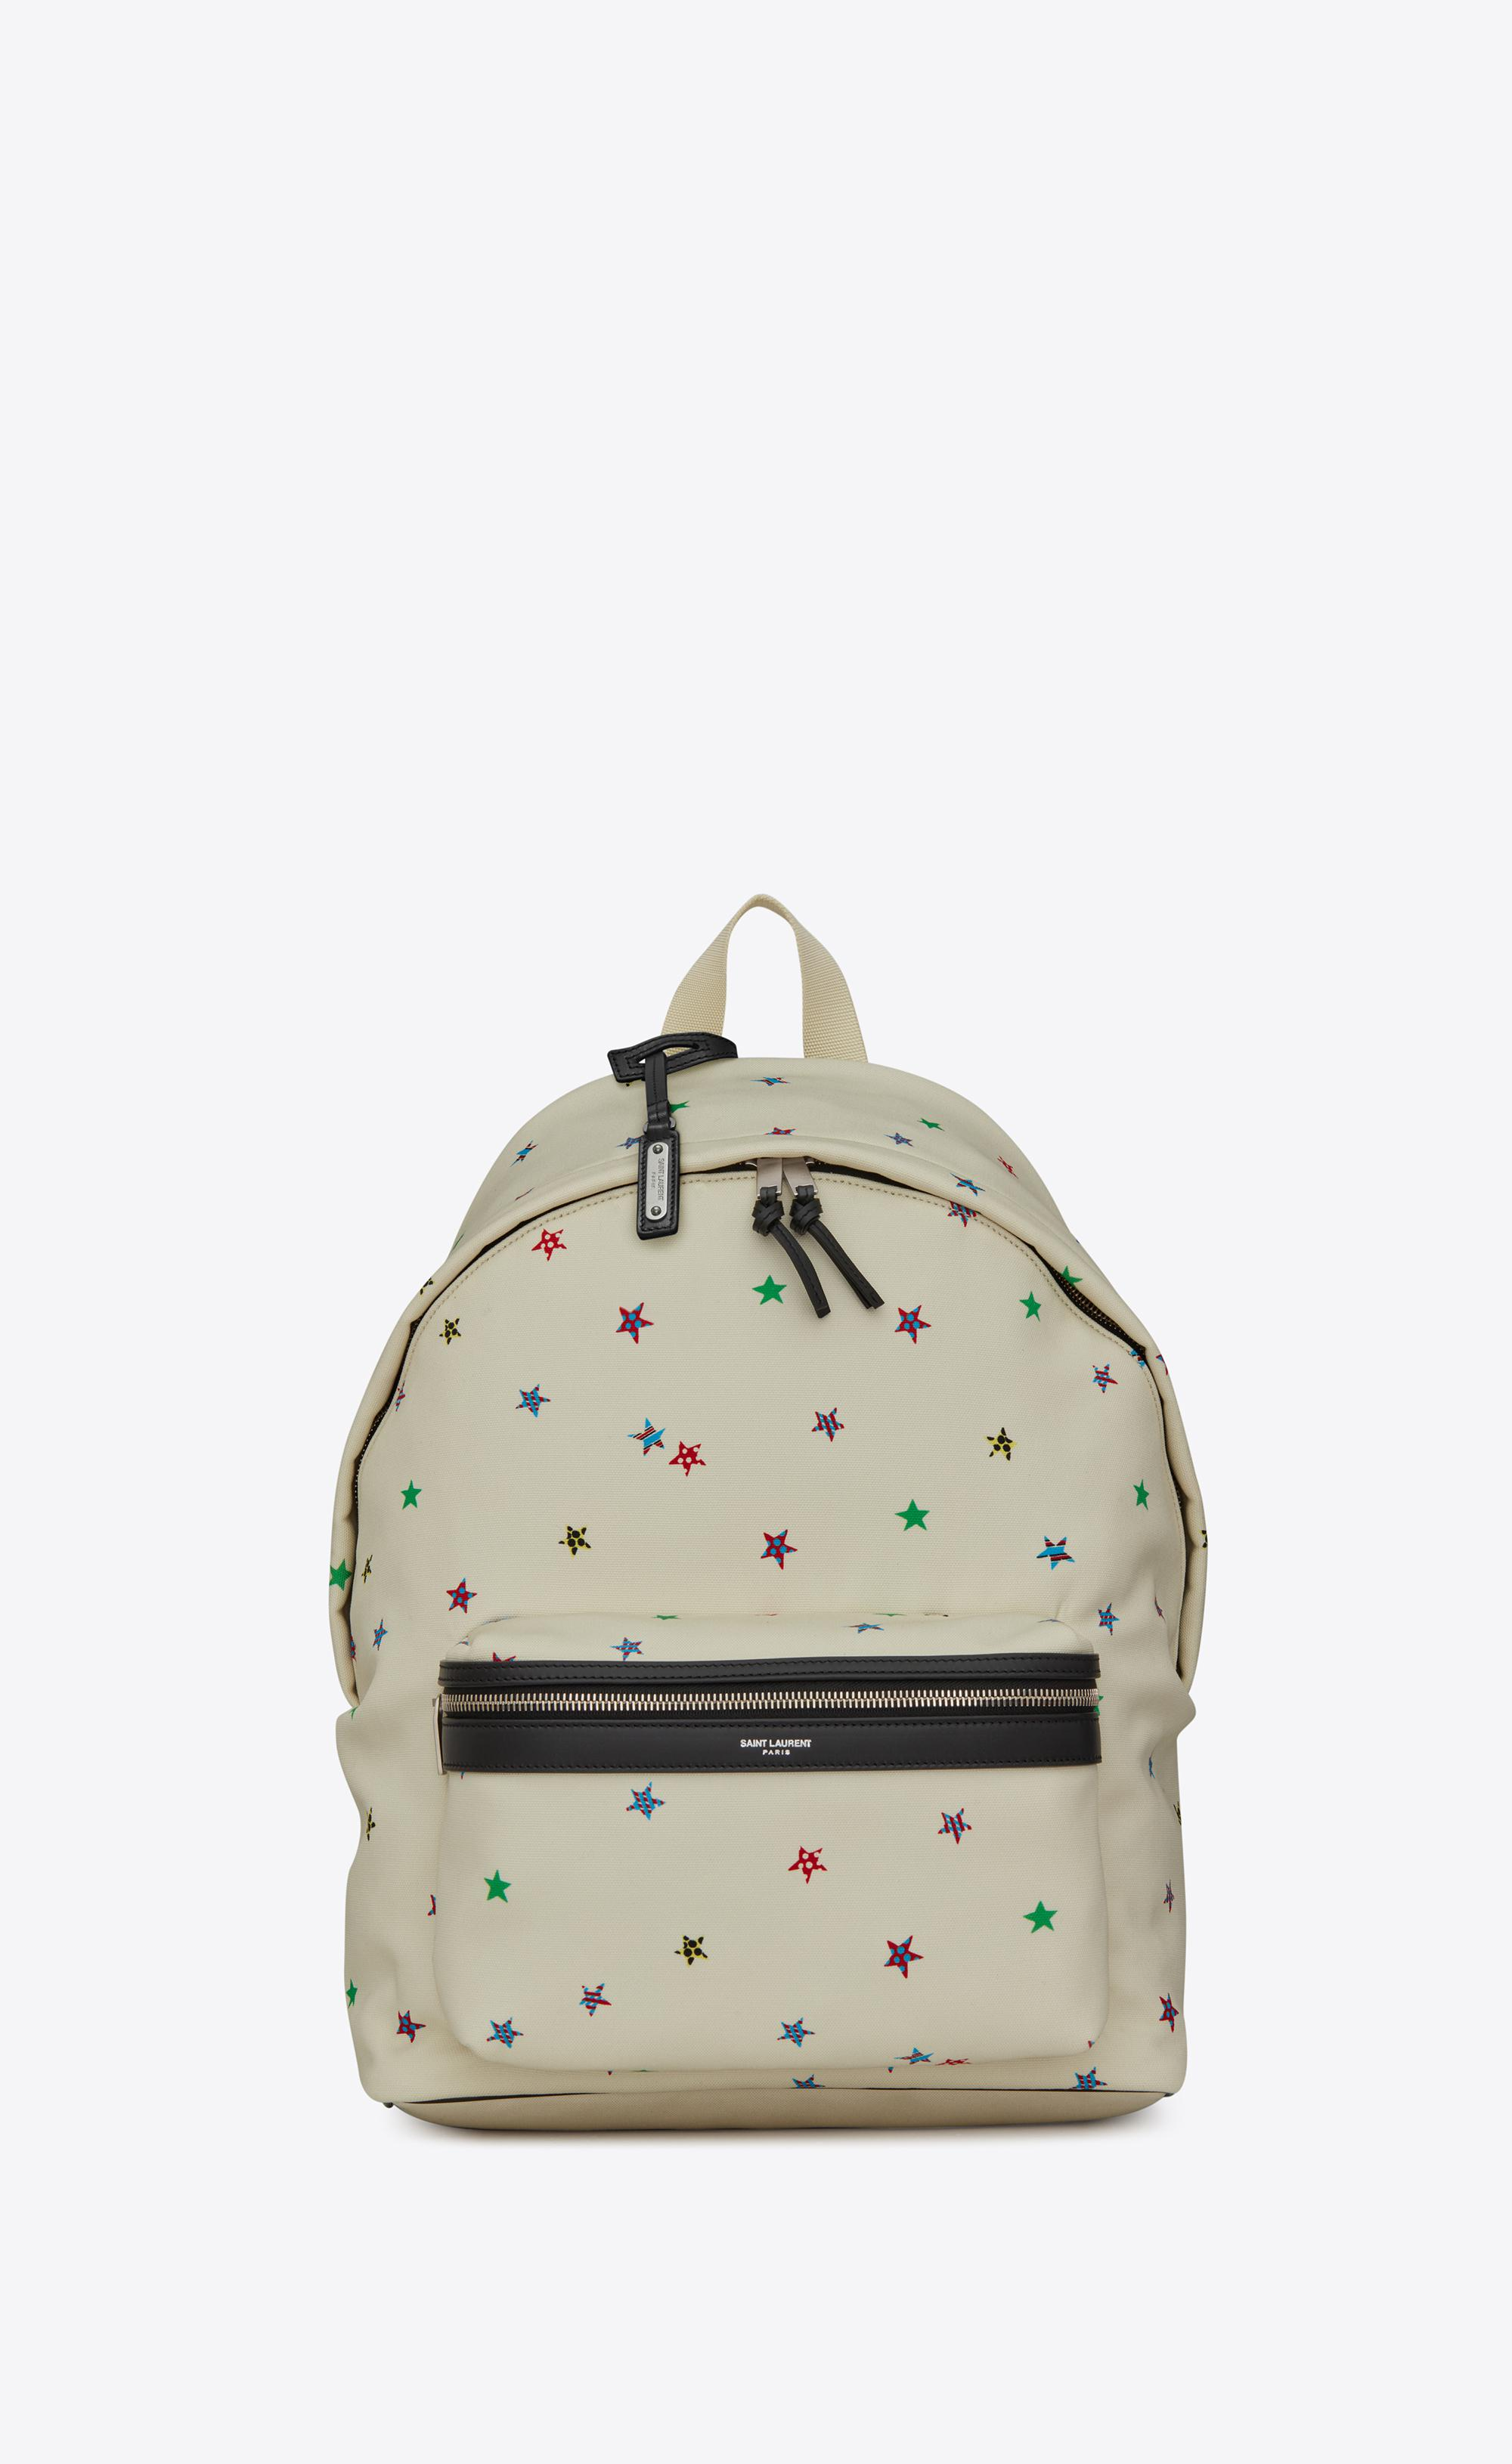 4d3e5ea54be Saint Laurent White City Canvas Backpack With Stars Print for men. View  fullscreen